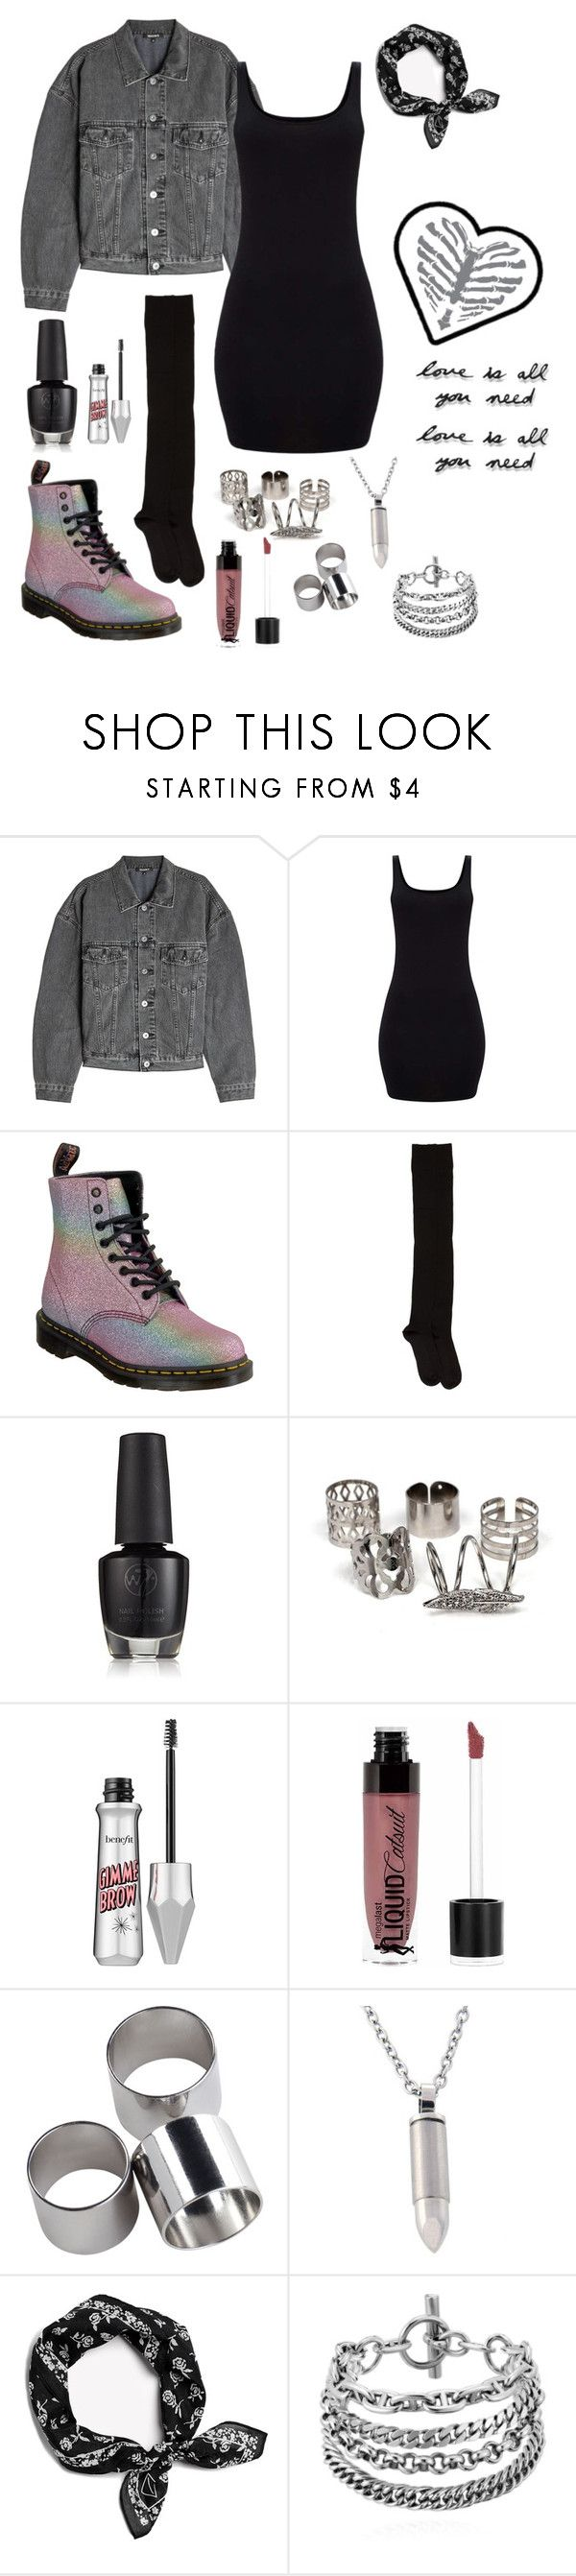 """""""Ride at Dusk"""" by fivetails ❤ liked on Polyvore featuring Yeezy by Kanye West, Dr. Martens, A Détacher, Wet n Wild, MTWTFSS Weekday, Vale and Umbra"""